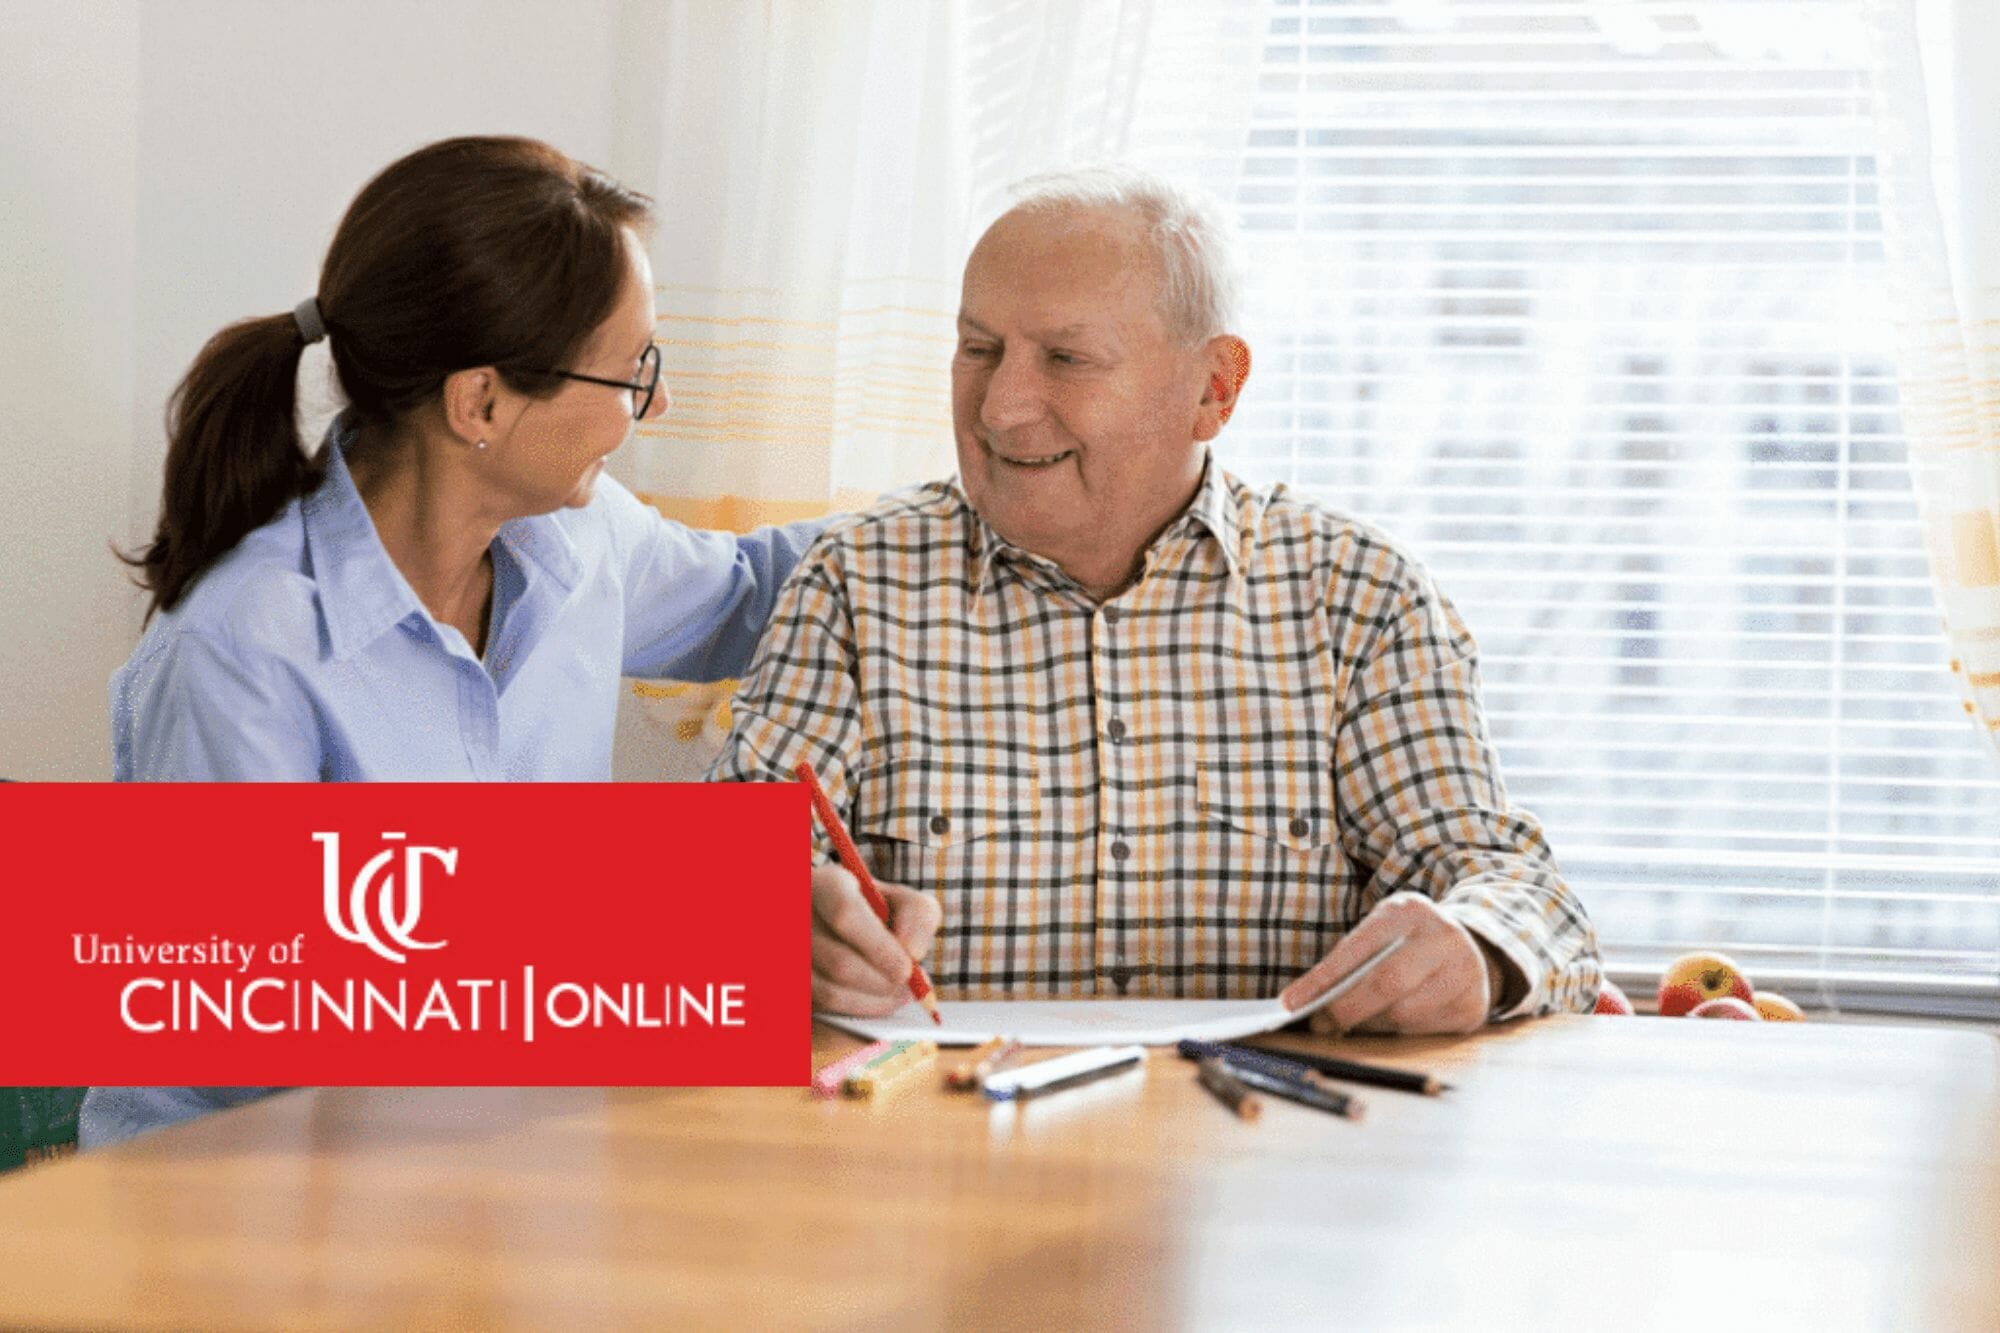 Occupational Therapist working with elderly man